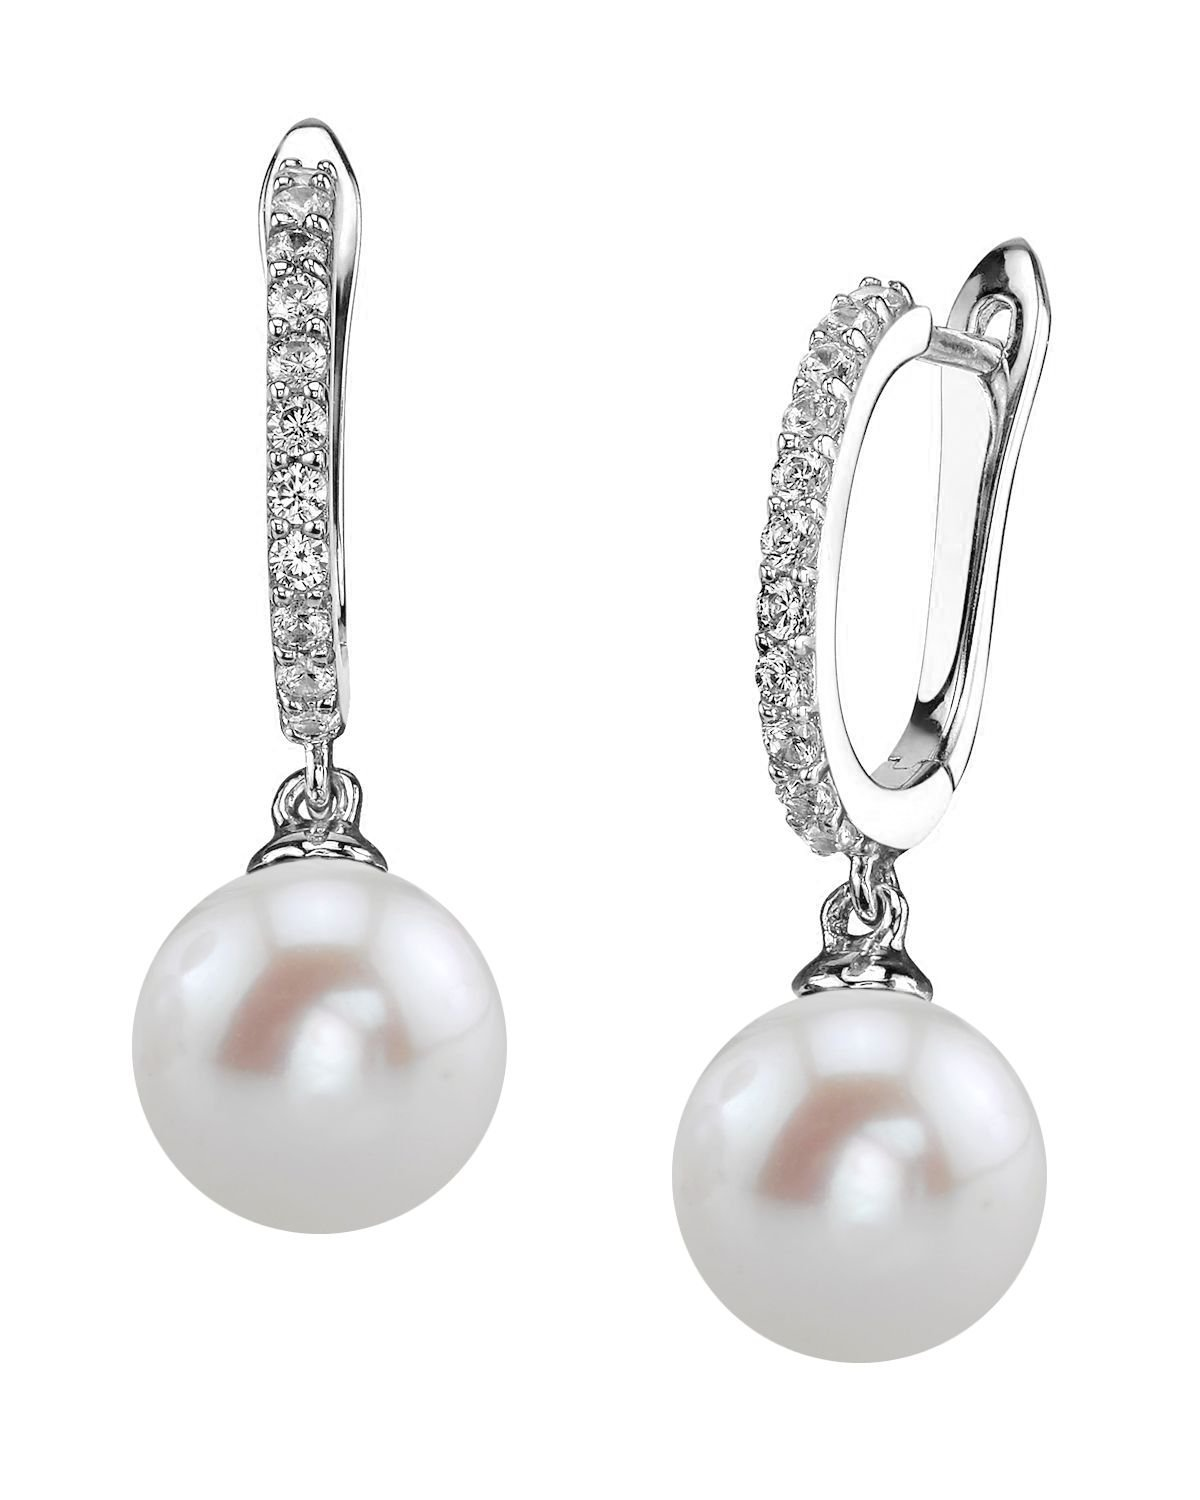 THE PEARL SOURCE 8-9mm Genuine White Freshwater Cultured Pearl Zara Earrings for Women